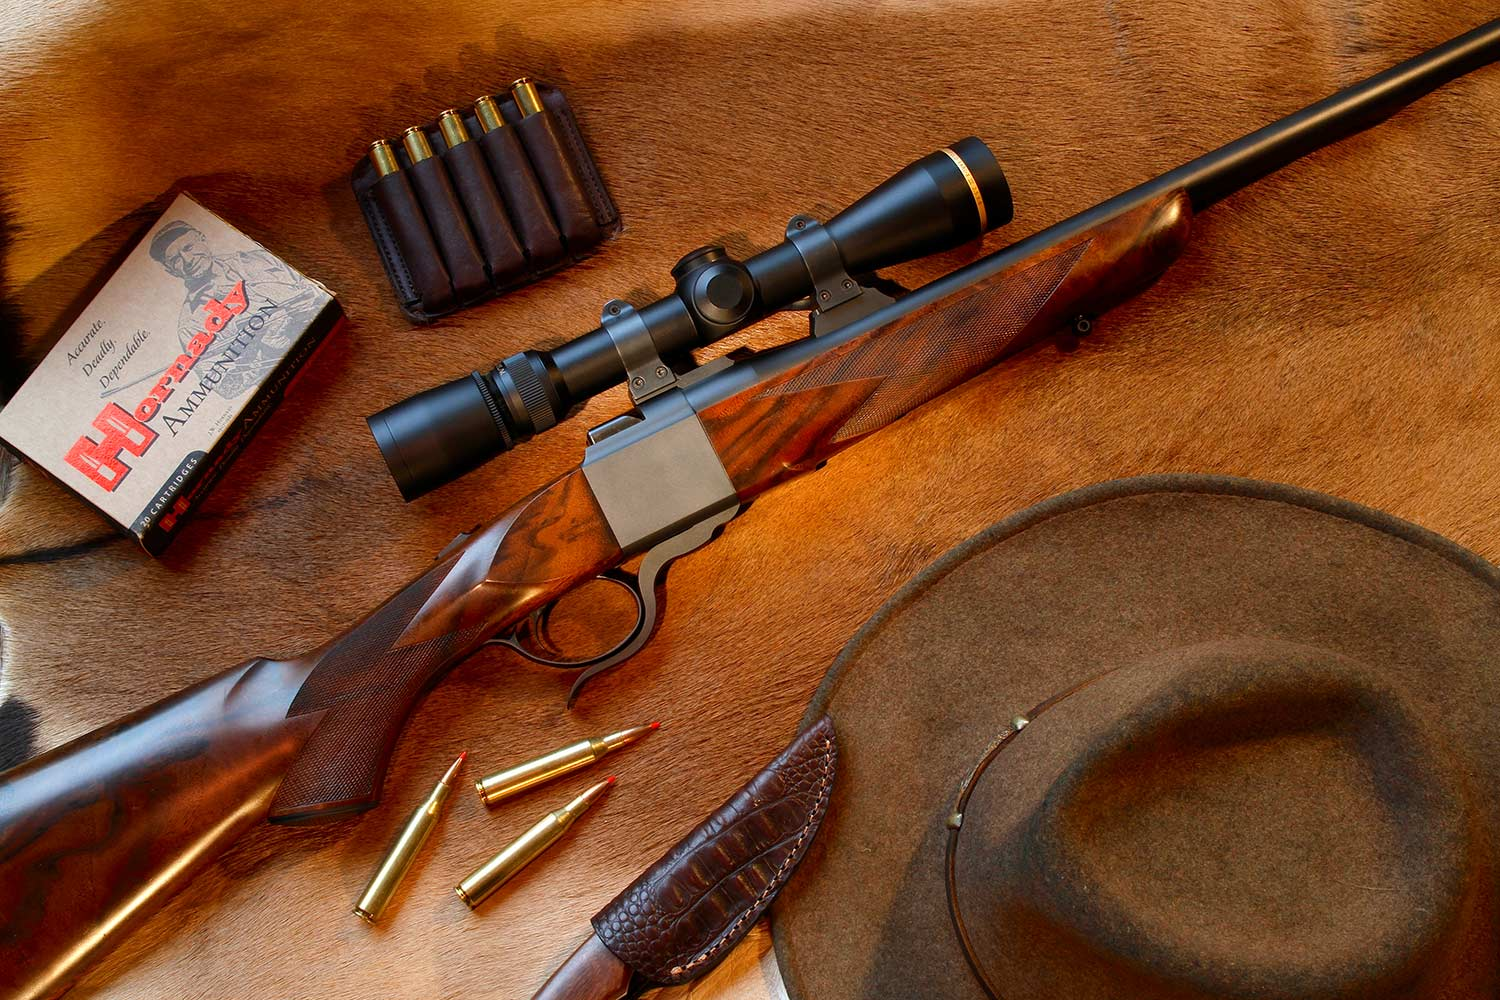 A hunting rifle and western hunting gear on a deer skin.